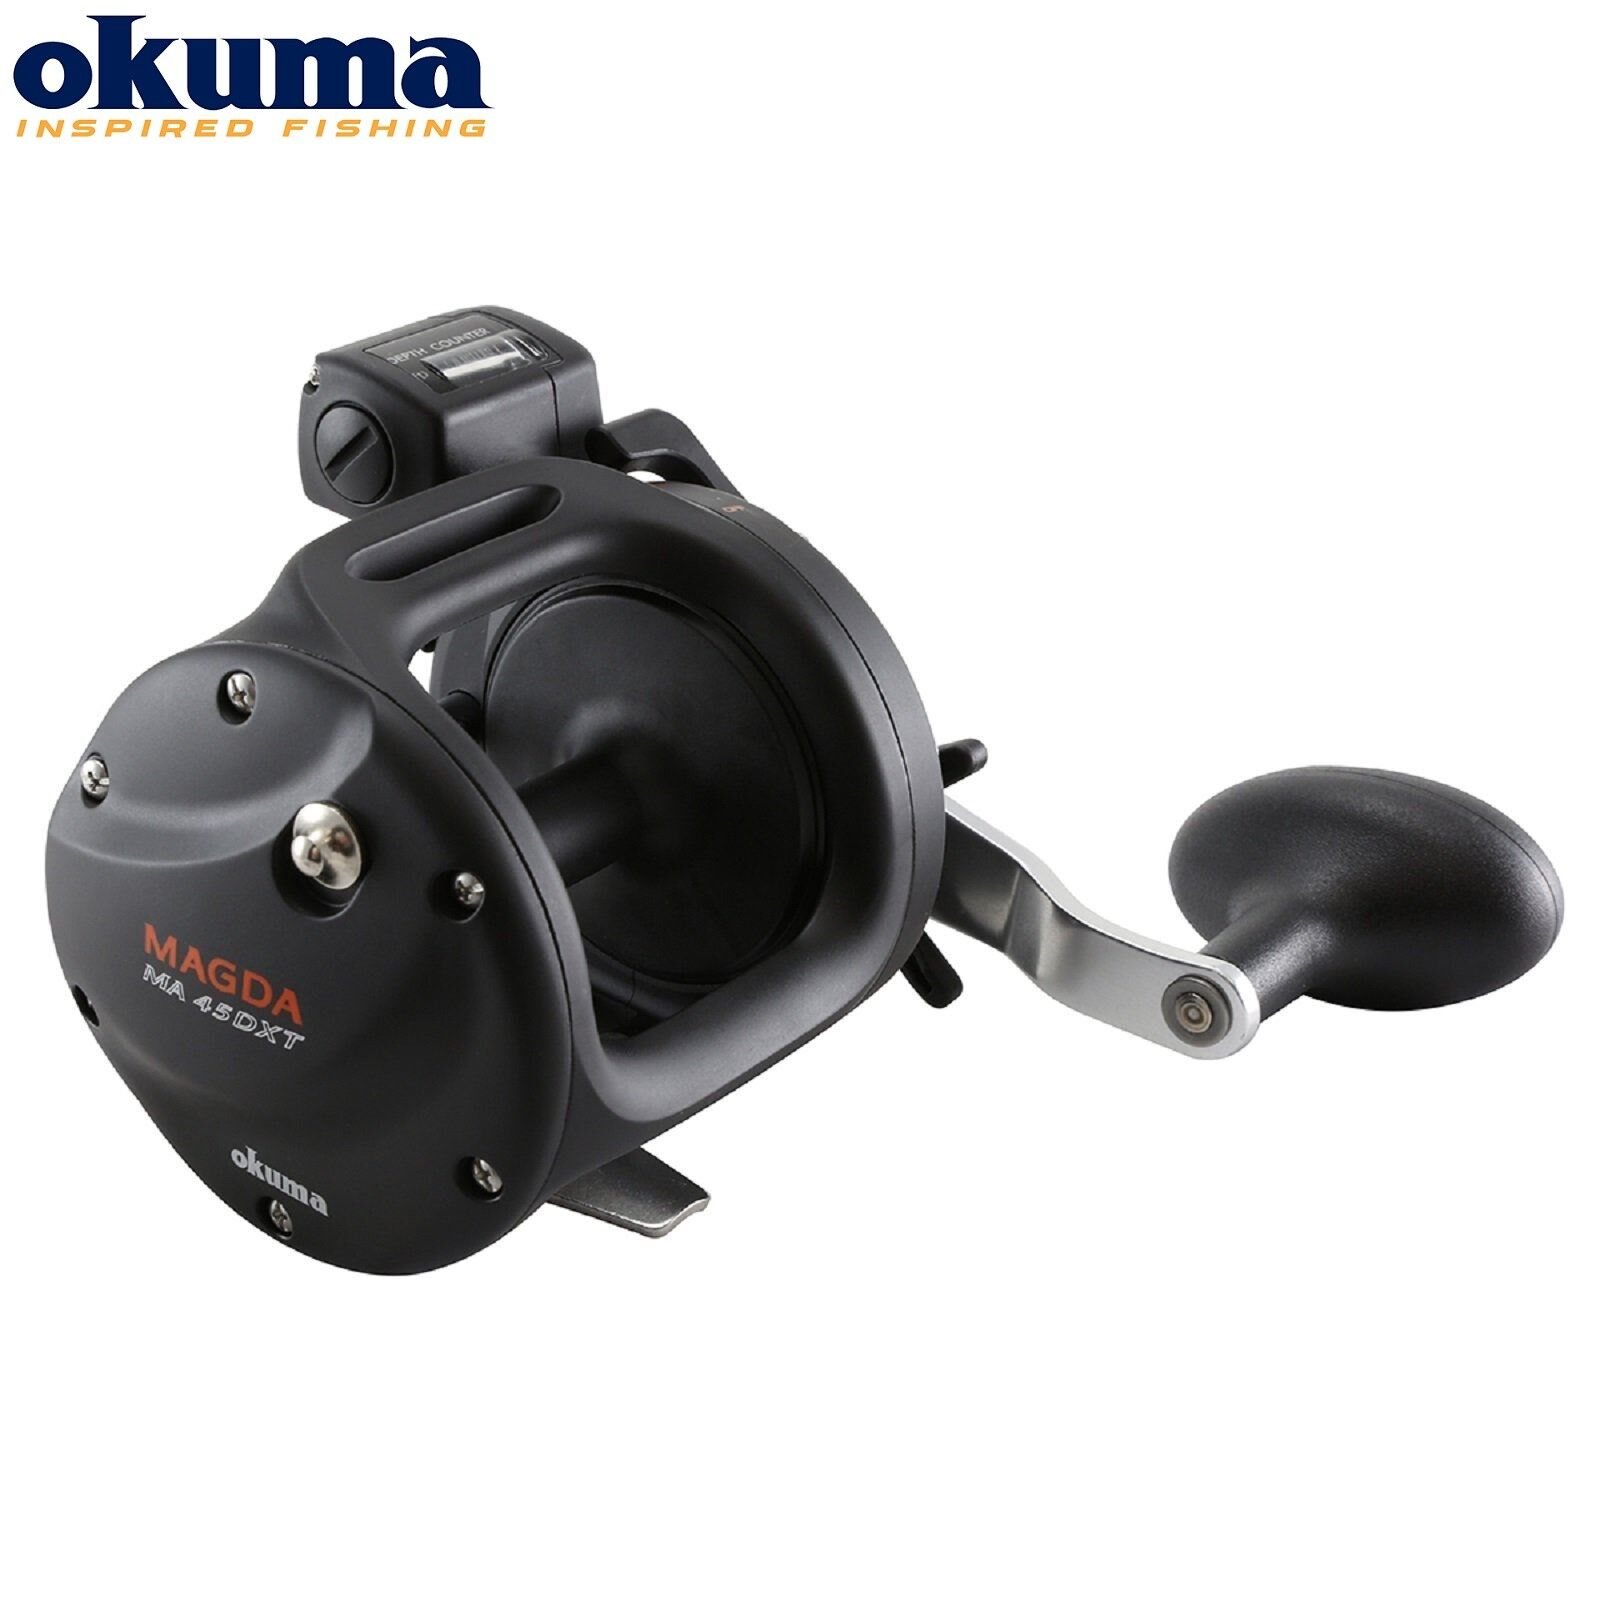 Okuma Magda Line Pro Line Magda Counter Fishing Reel Saltwater   For Extreme High Speed bf83fc